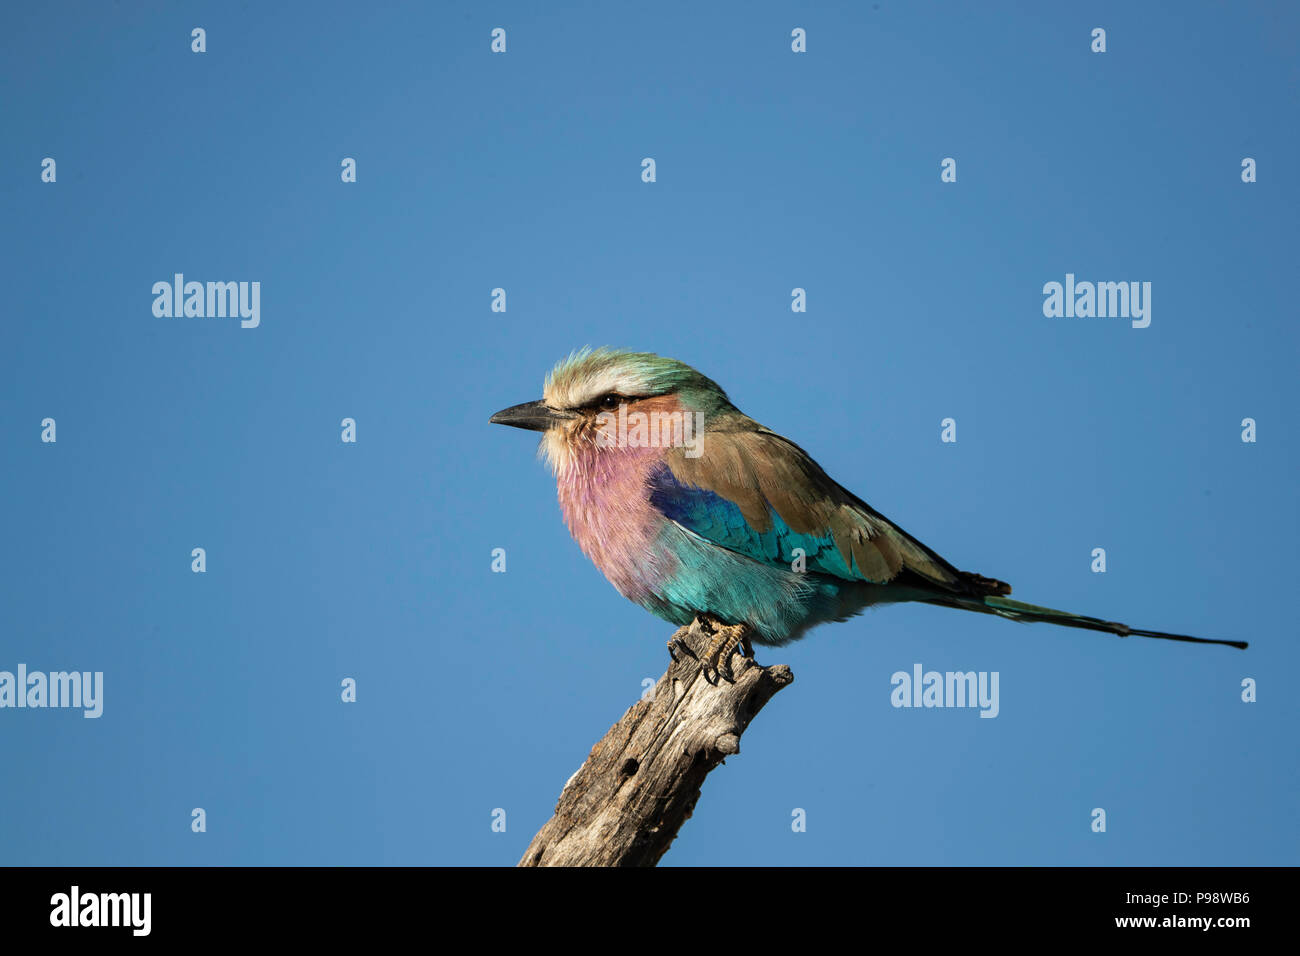 Lilac Breasted Roller on a perch - Stock Image